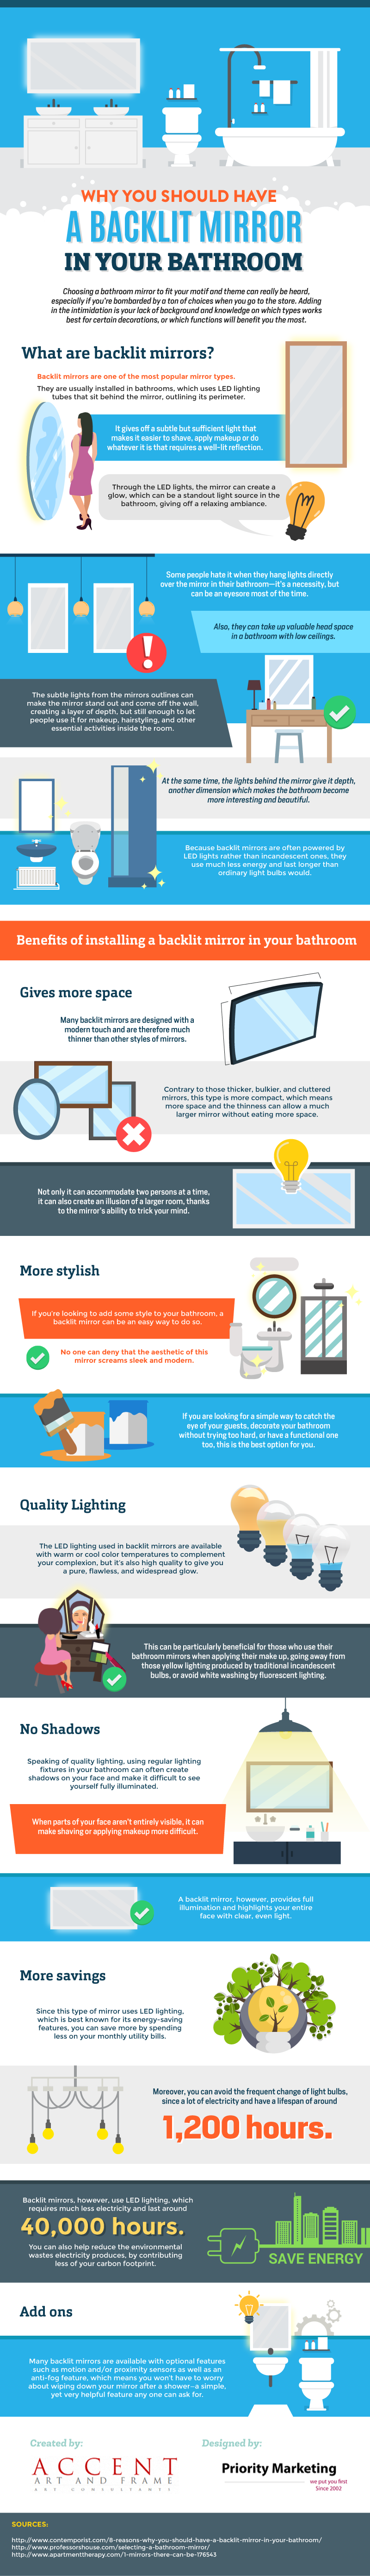 Why You Should Have A Backlit Mirror In Your Bathroom - Infographic